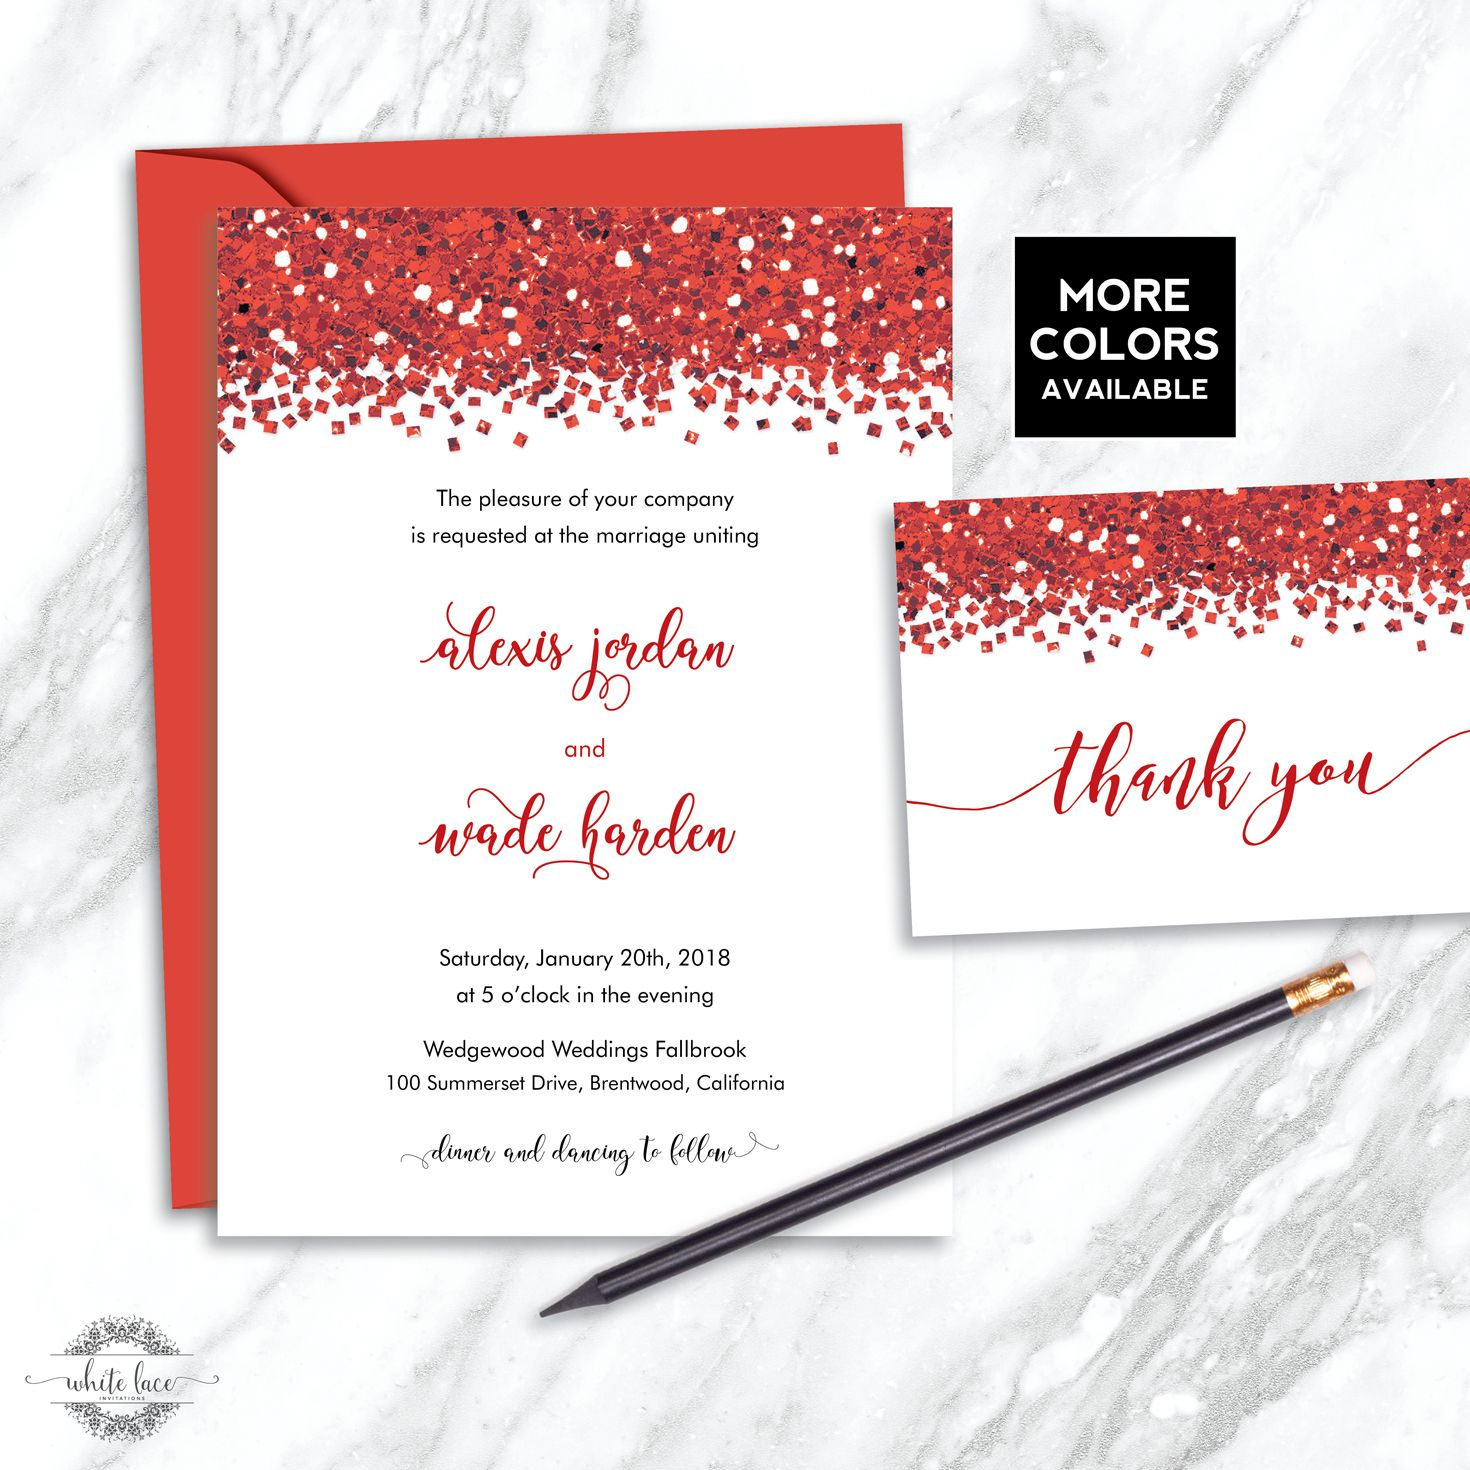 Modern Sequin Wedding Invitations Vignette - Invitations and ...